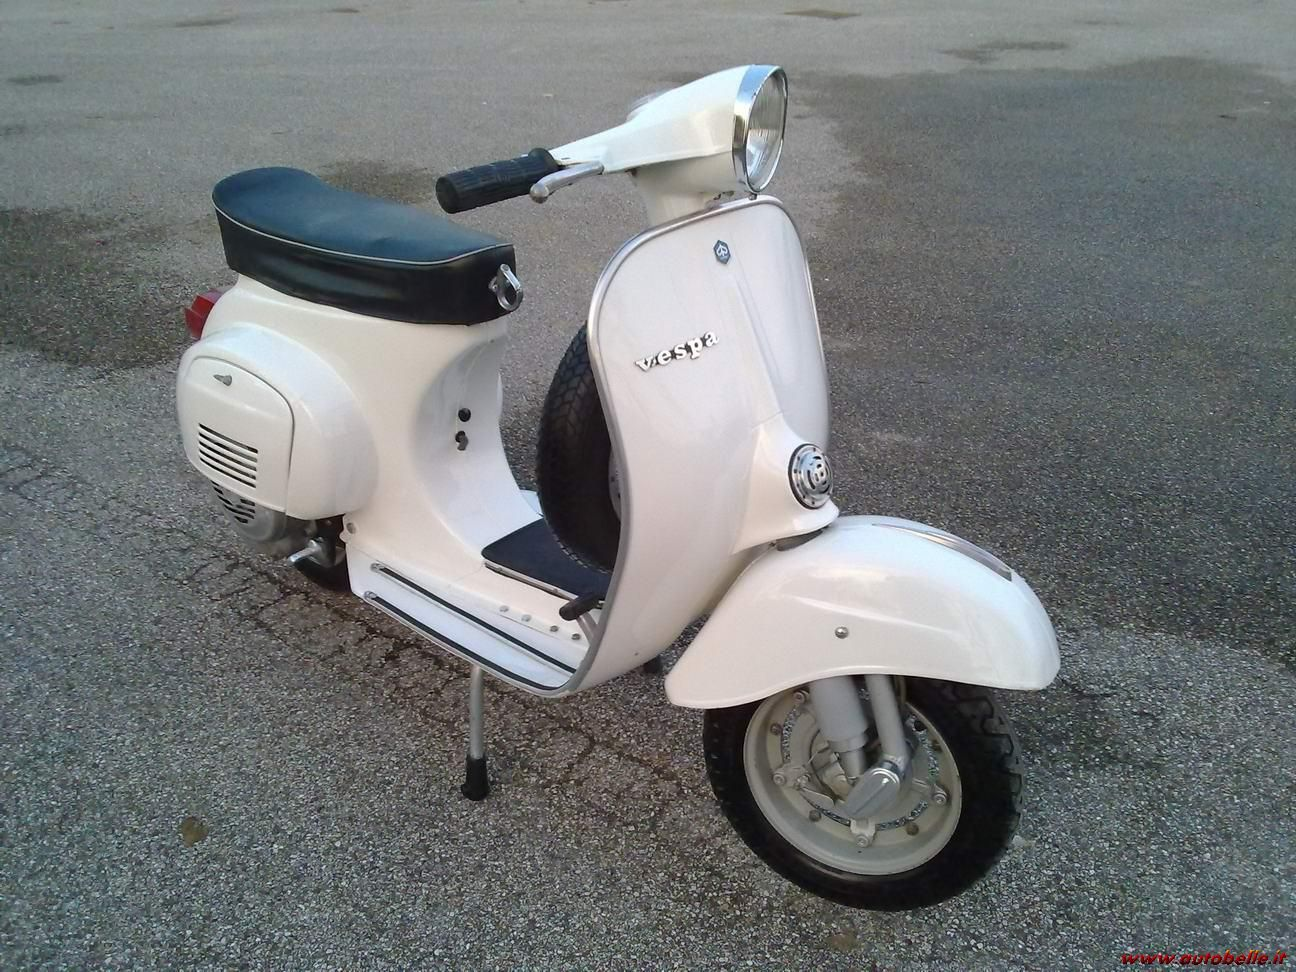 piaggio vespa 125 primavera vespa pinterest vespa. Black Bedroom Furniture Sets. Home Design Ideas